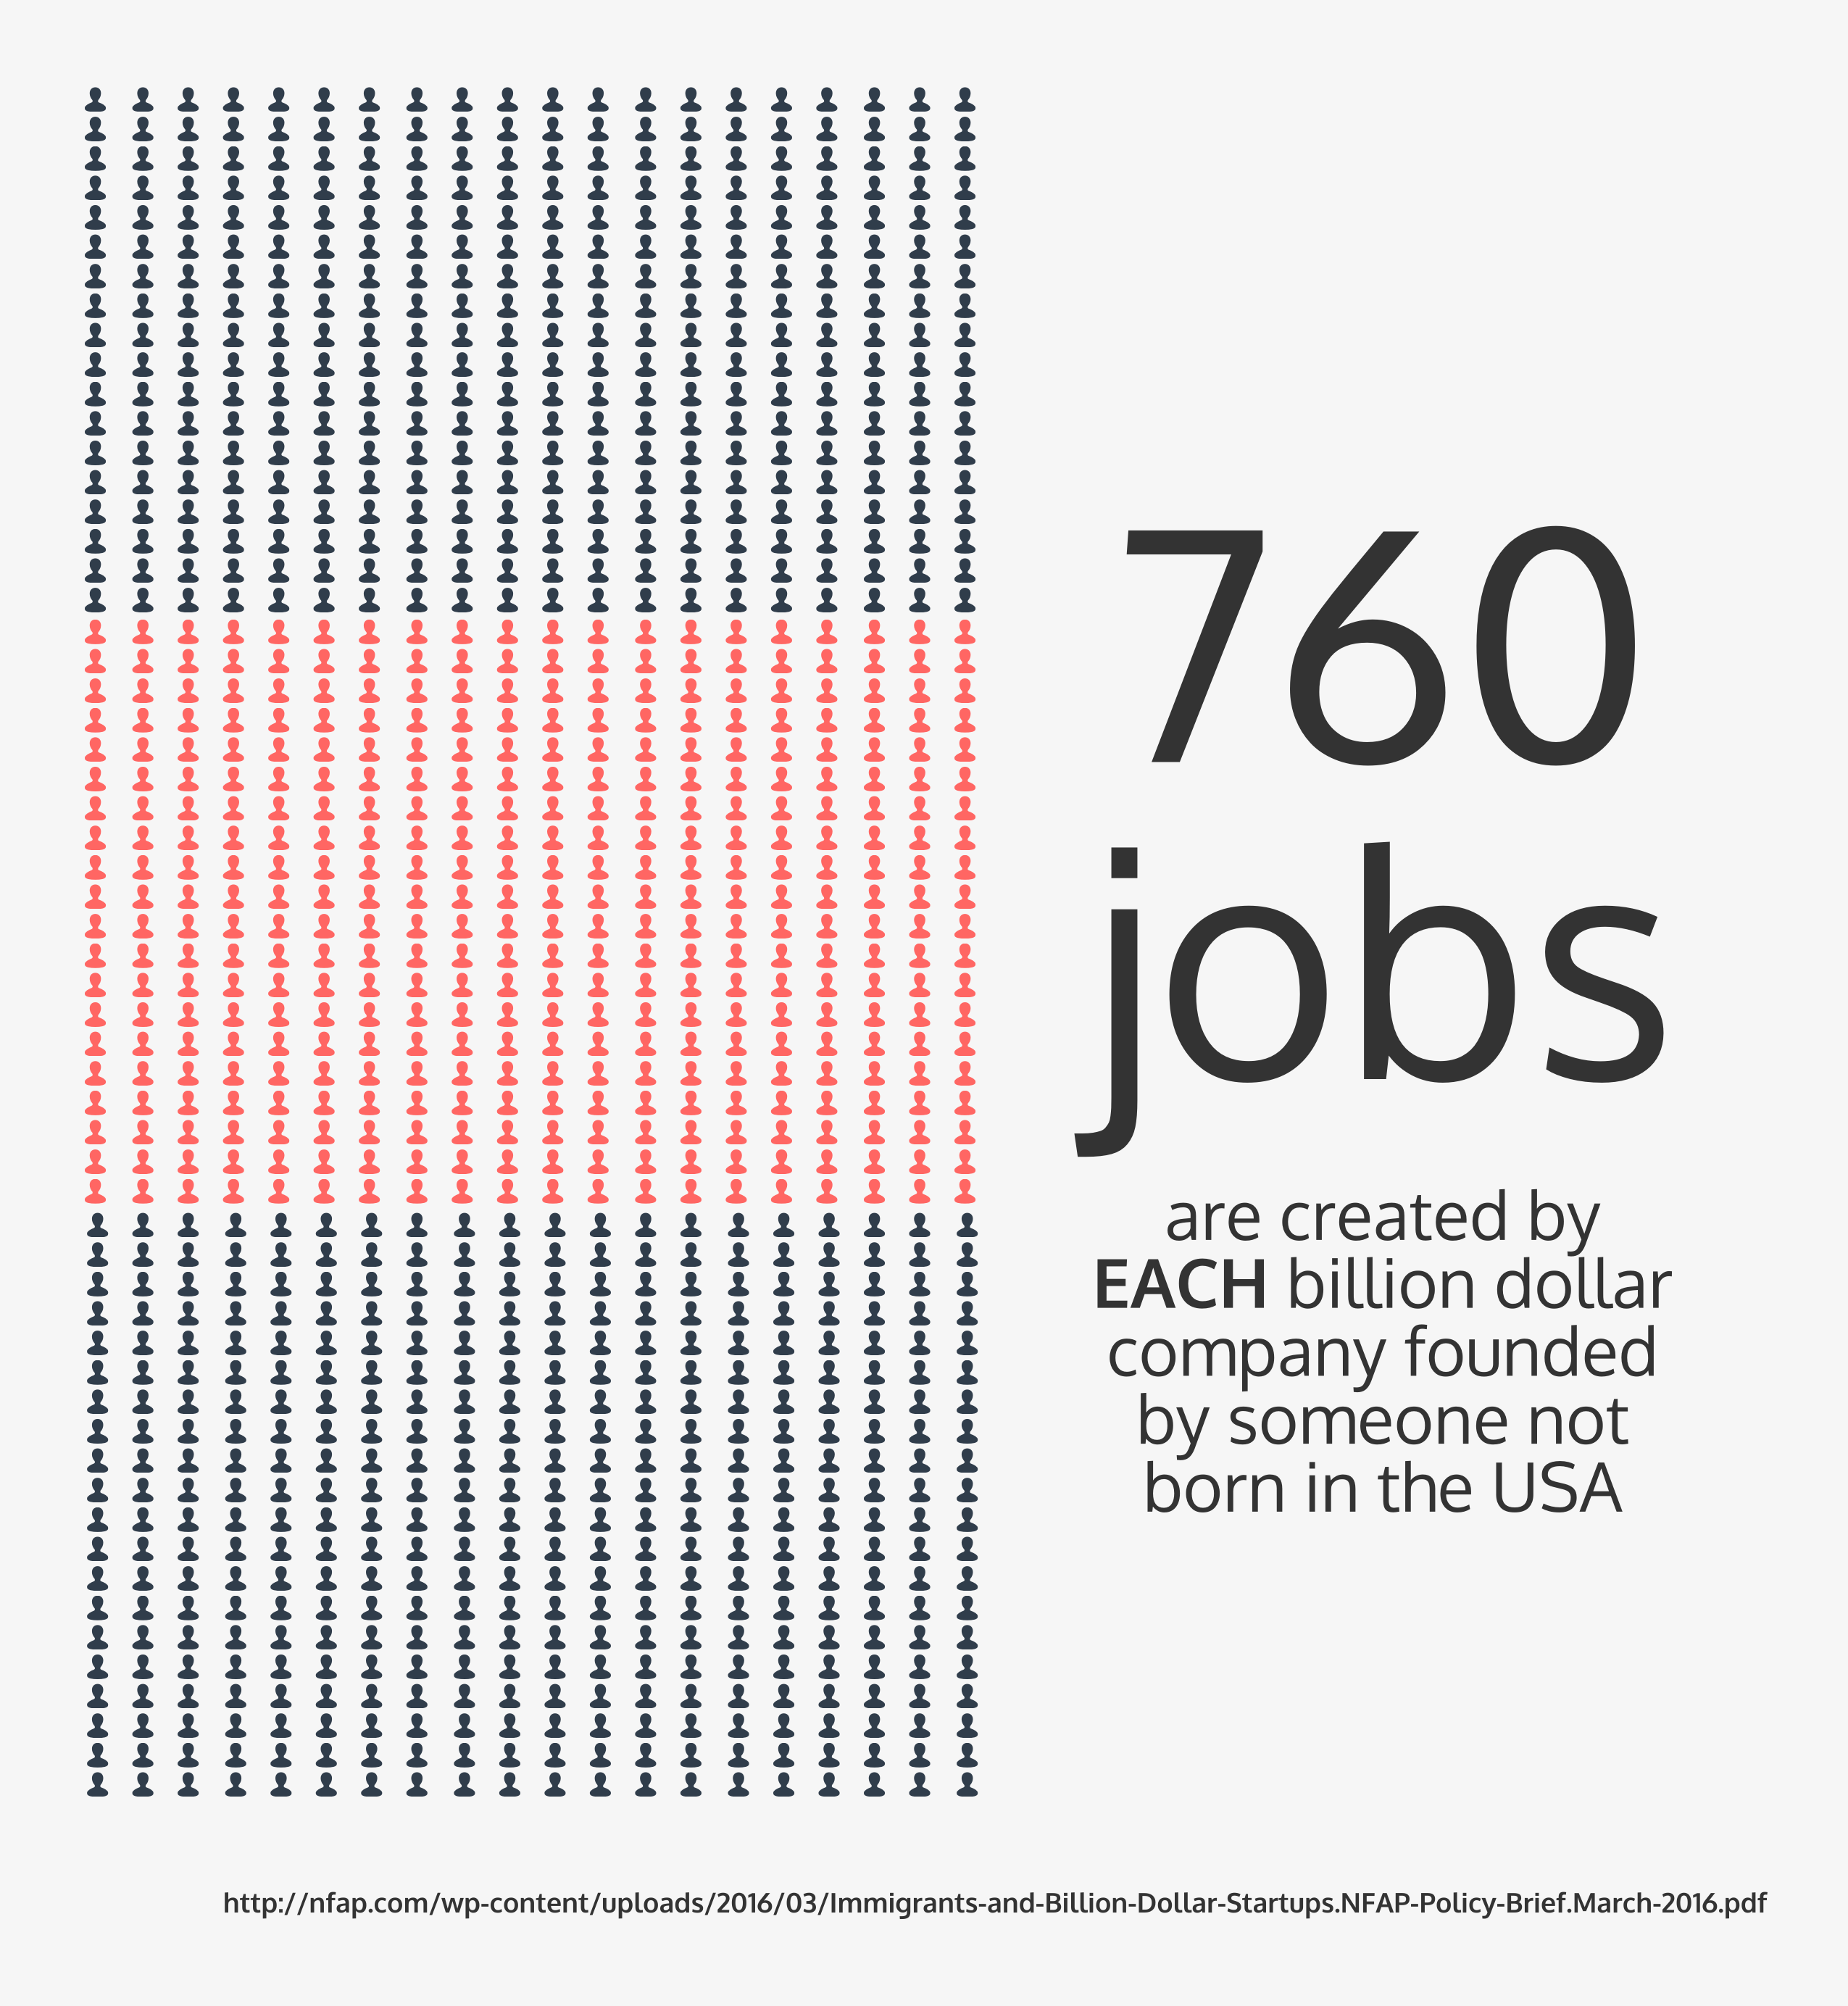 760 Jobs are created by each billion dollar company founded by someone not born in the USA.